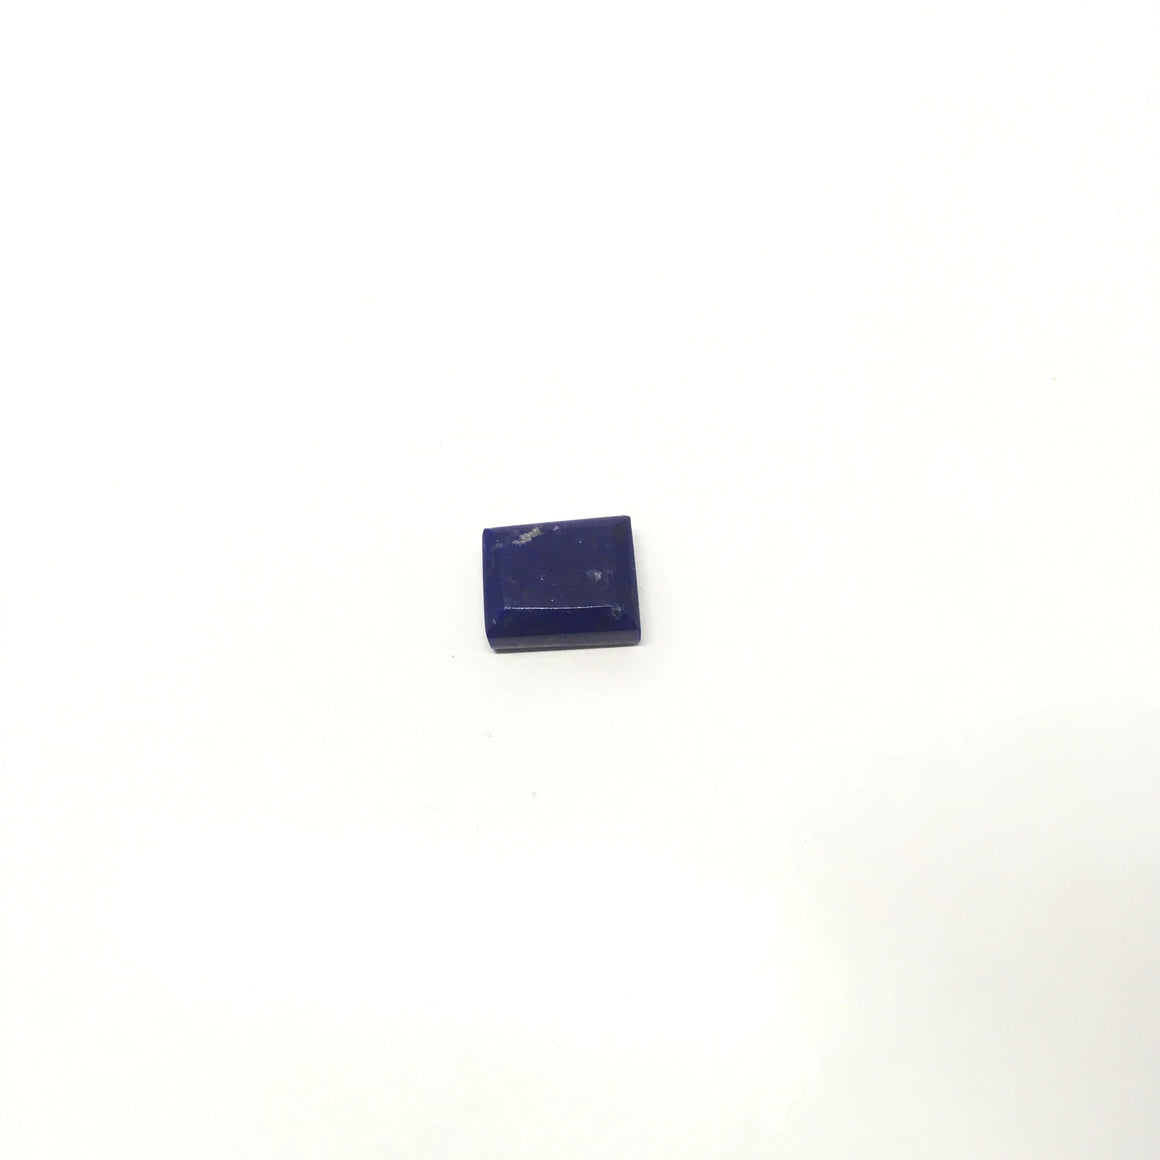 Lapis Lazuli Cabochon - Lapis Cabochon For Ring Emerald Cut - 11.45 ct